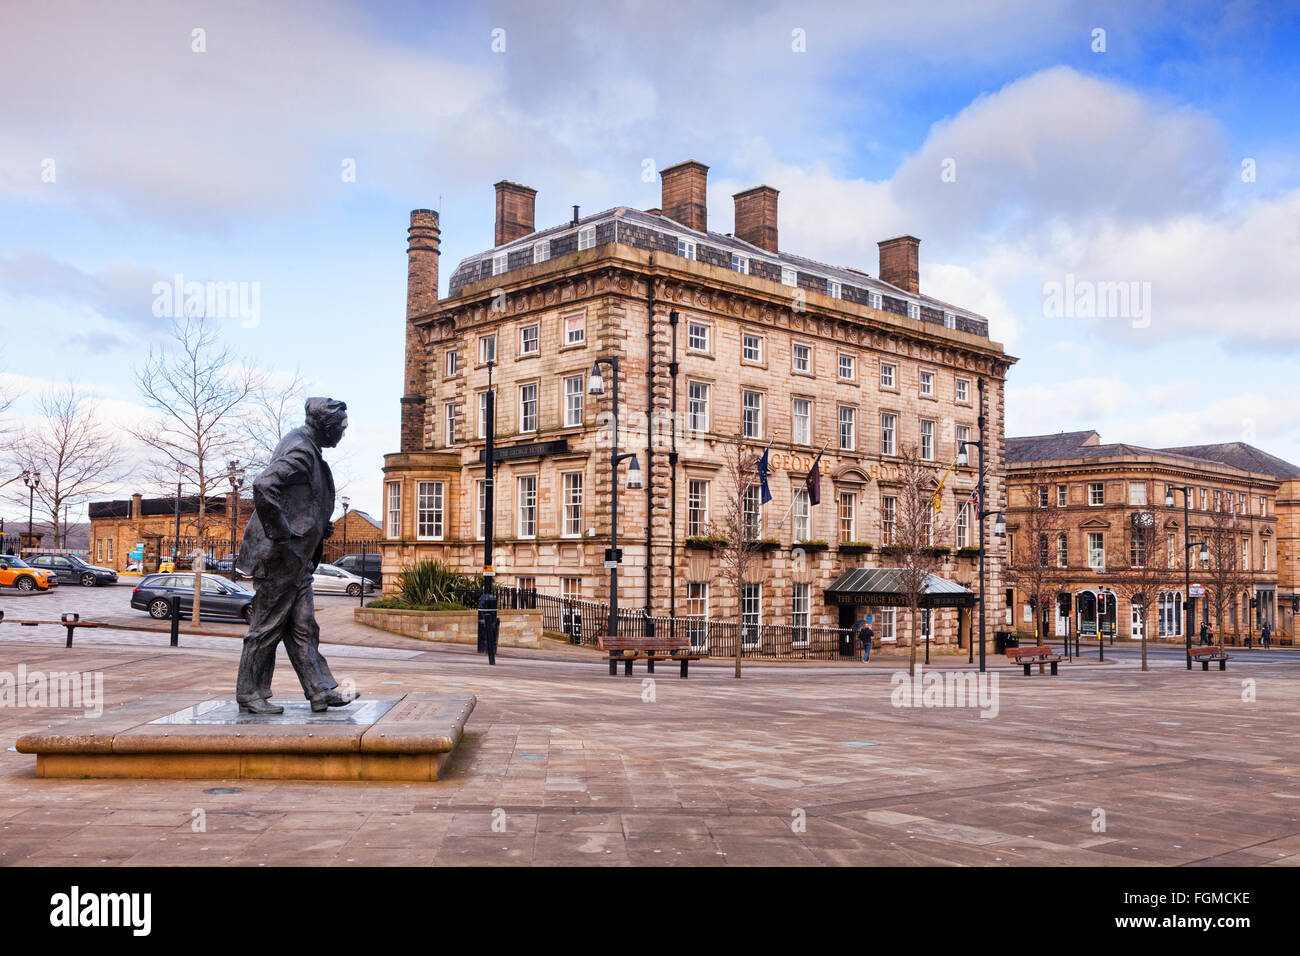 George Square, Huddersfield, in winter, with the George Hotel and statue of Harold Wilson, Huddersfield, England, - Stock Image